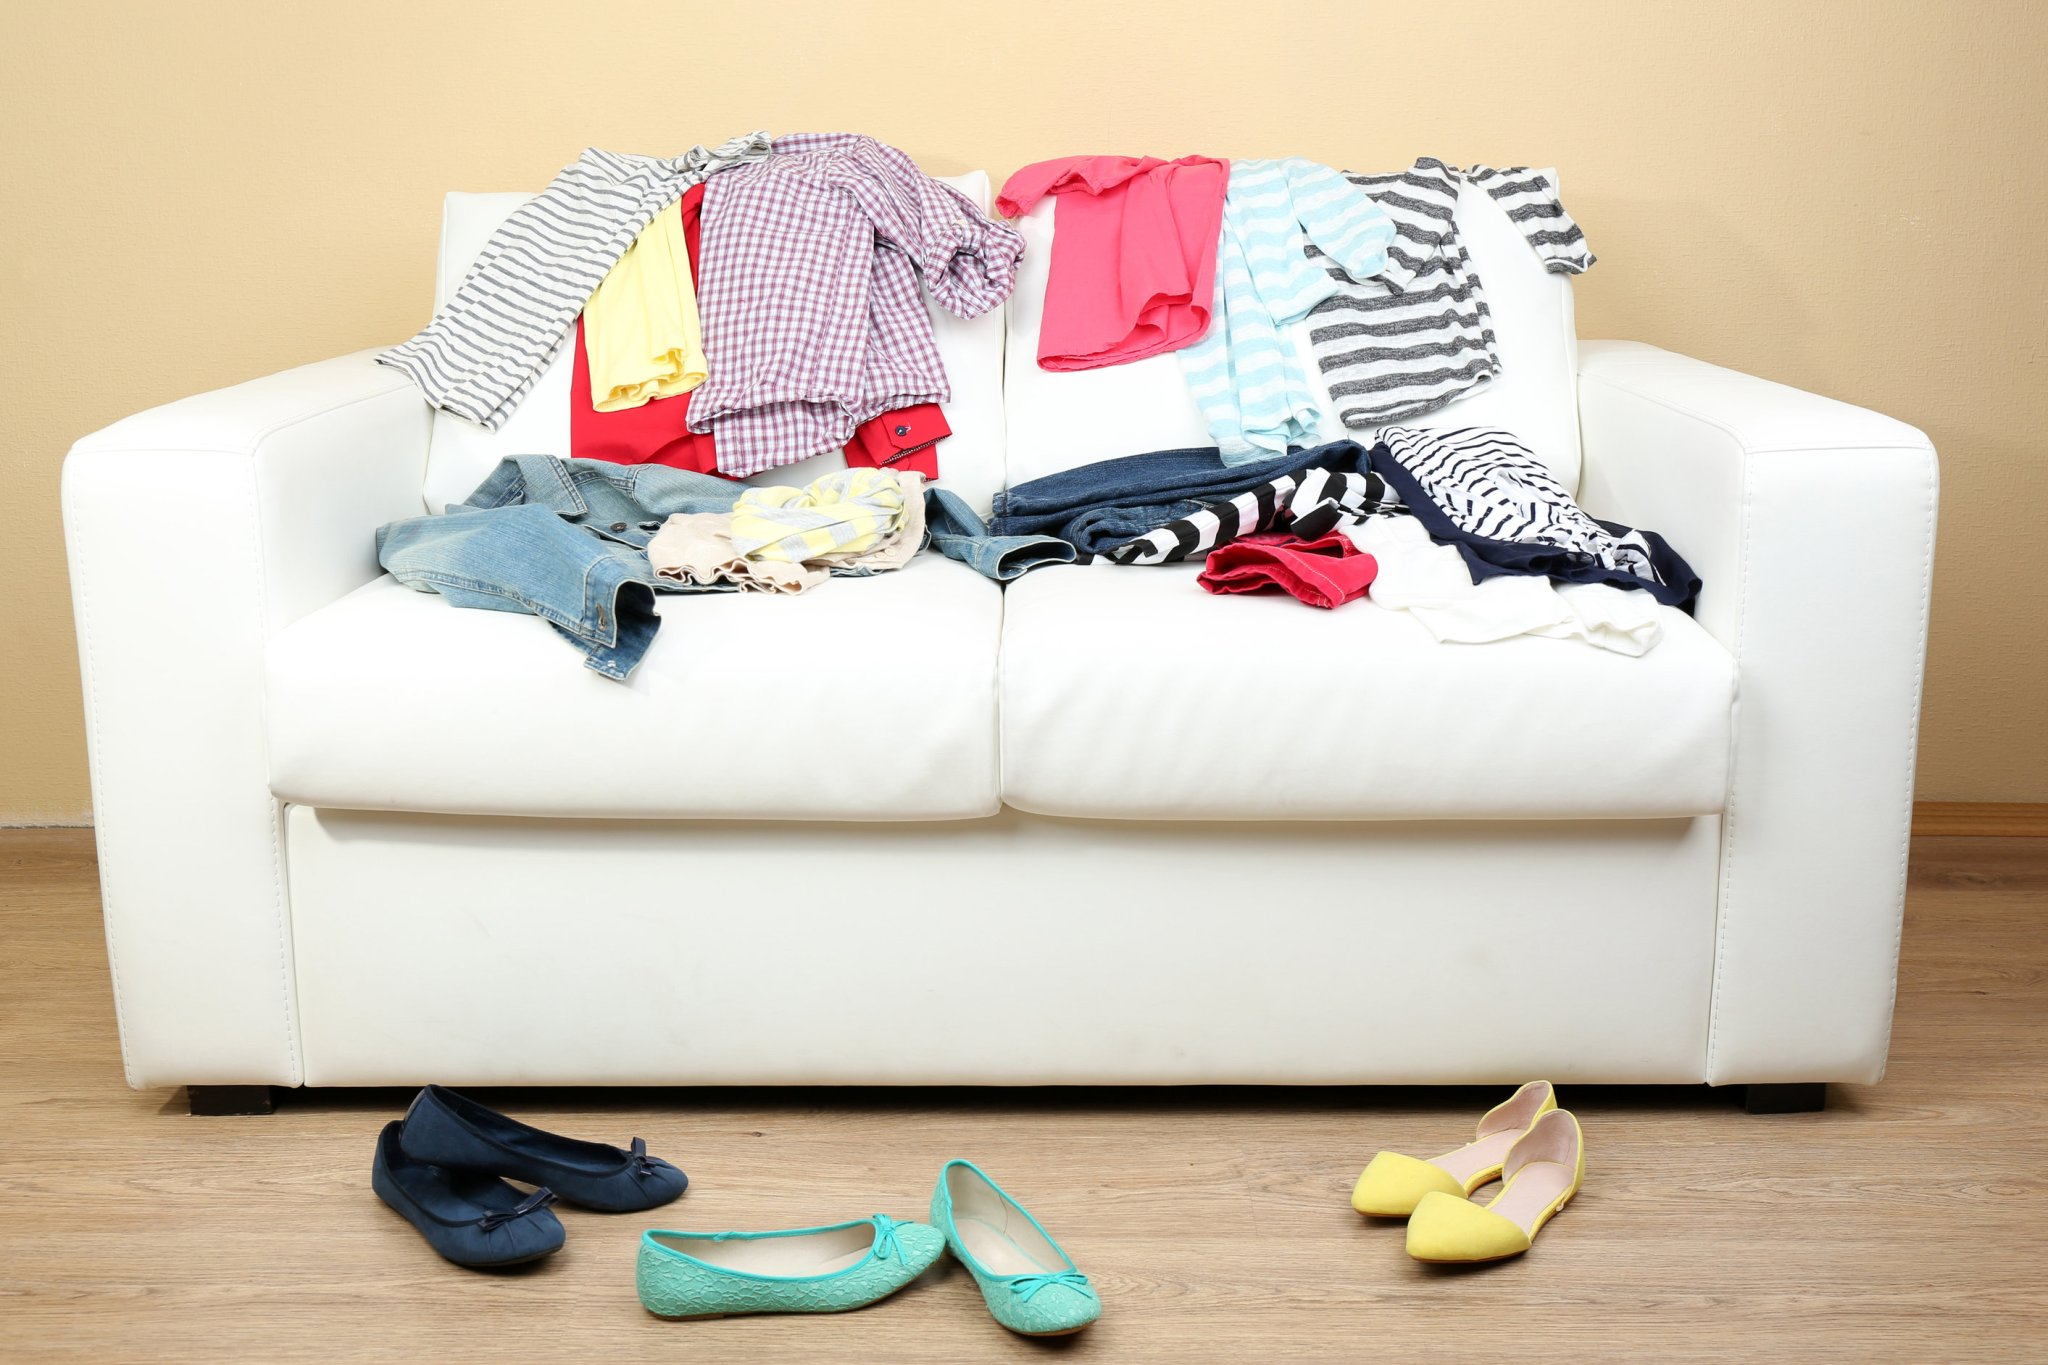 Home Organization Hacks That Will Change Your Life